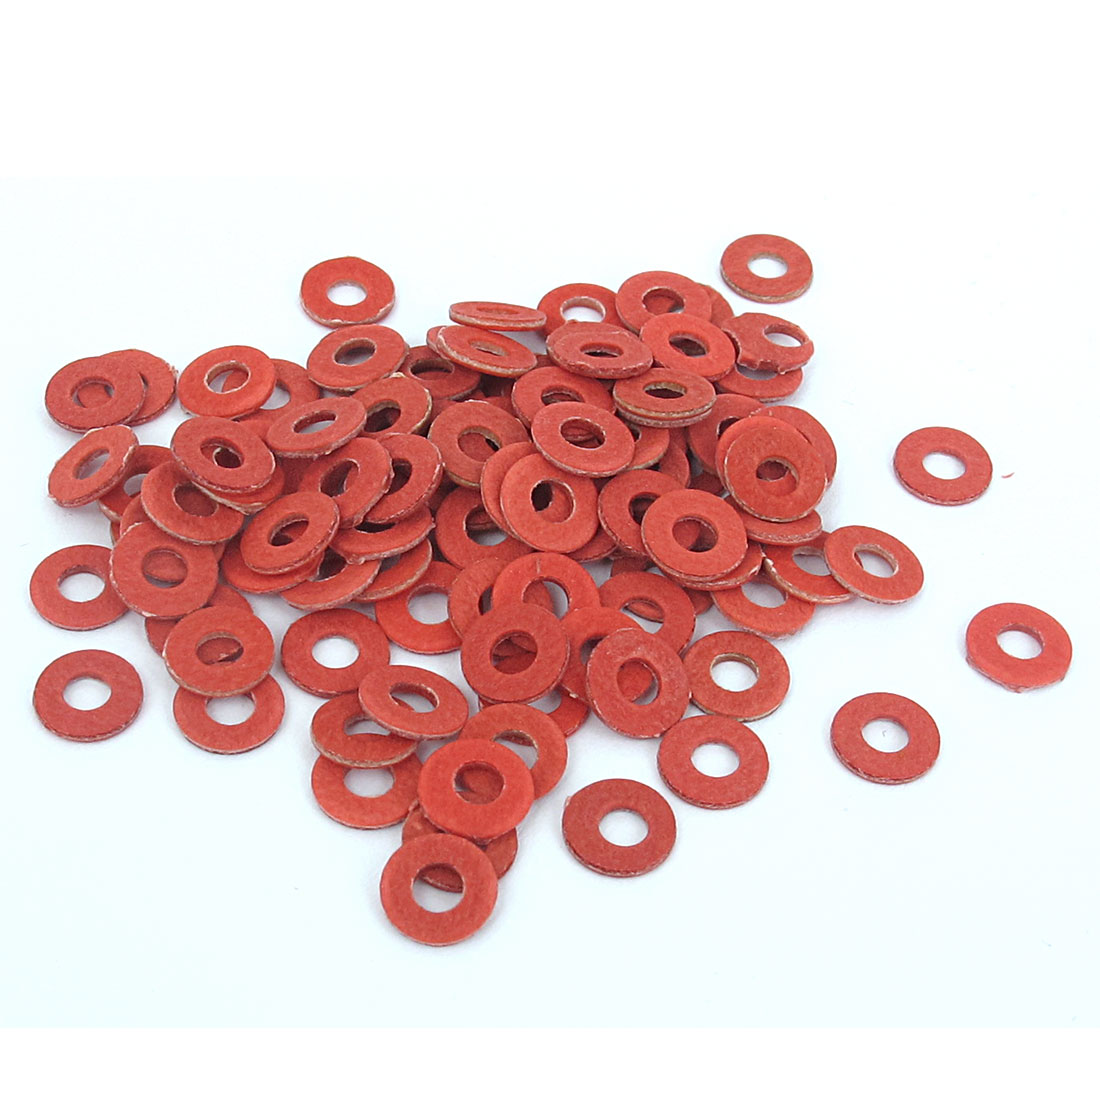 3mmx7mmx1mm Fiber Motherboard Insulating Pad Fastening Washers Red 100pcs